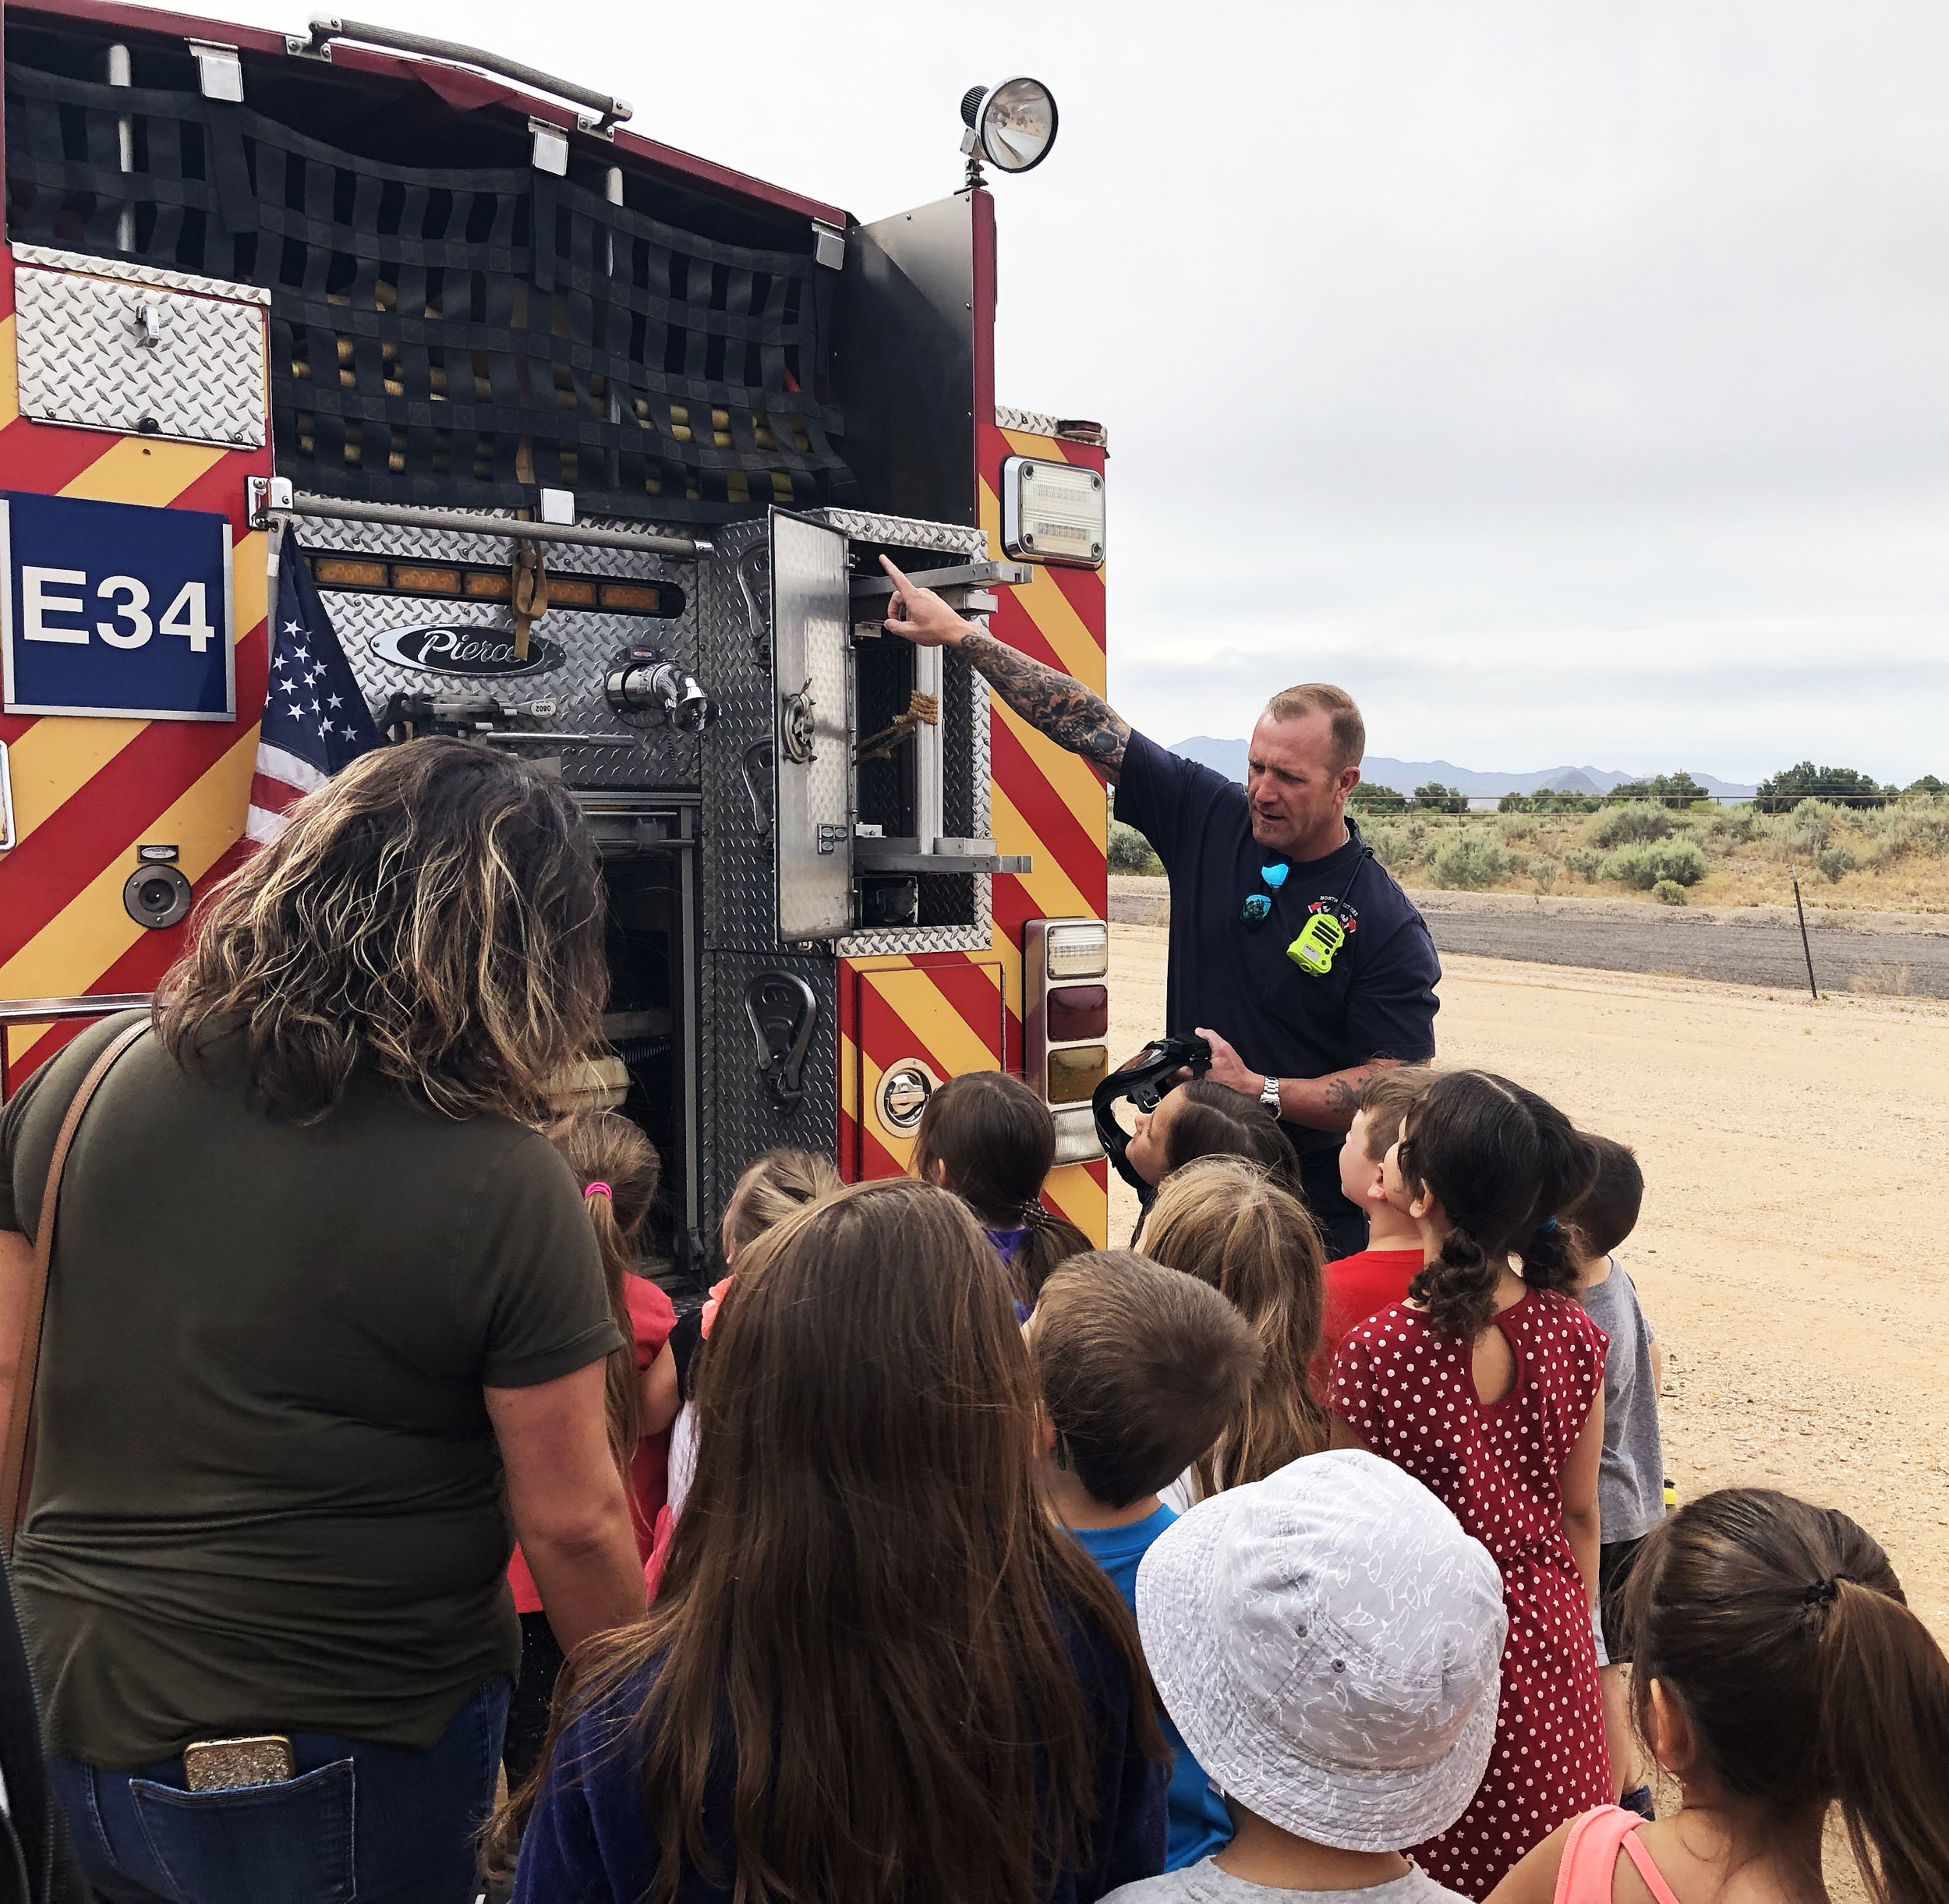 The firetrucks of Northwest Fire were among the most popular for the students to explore.